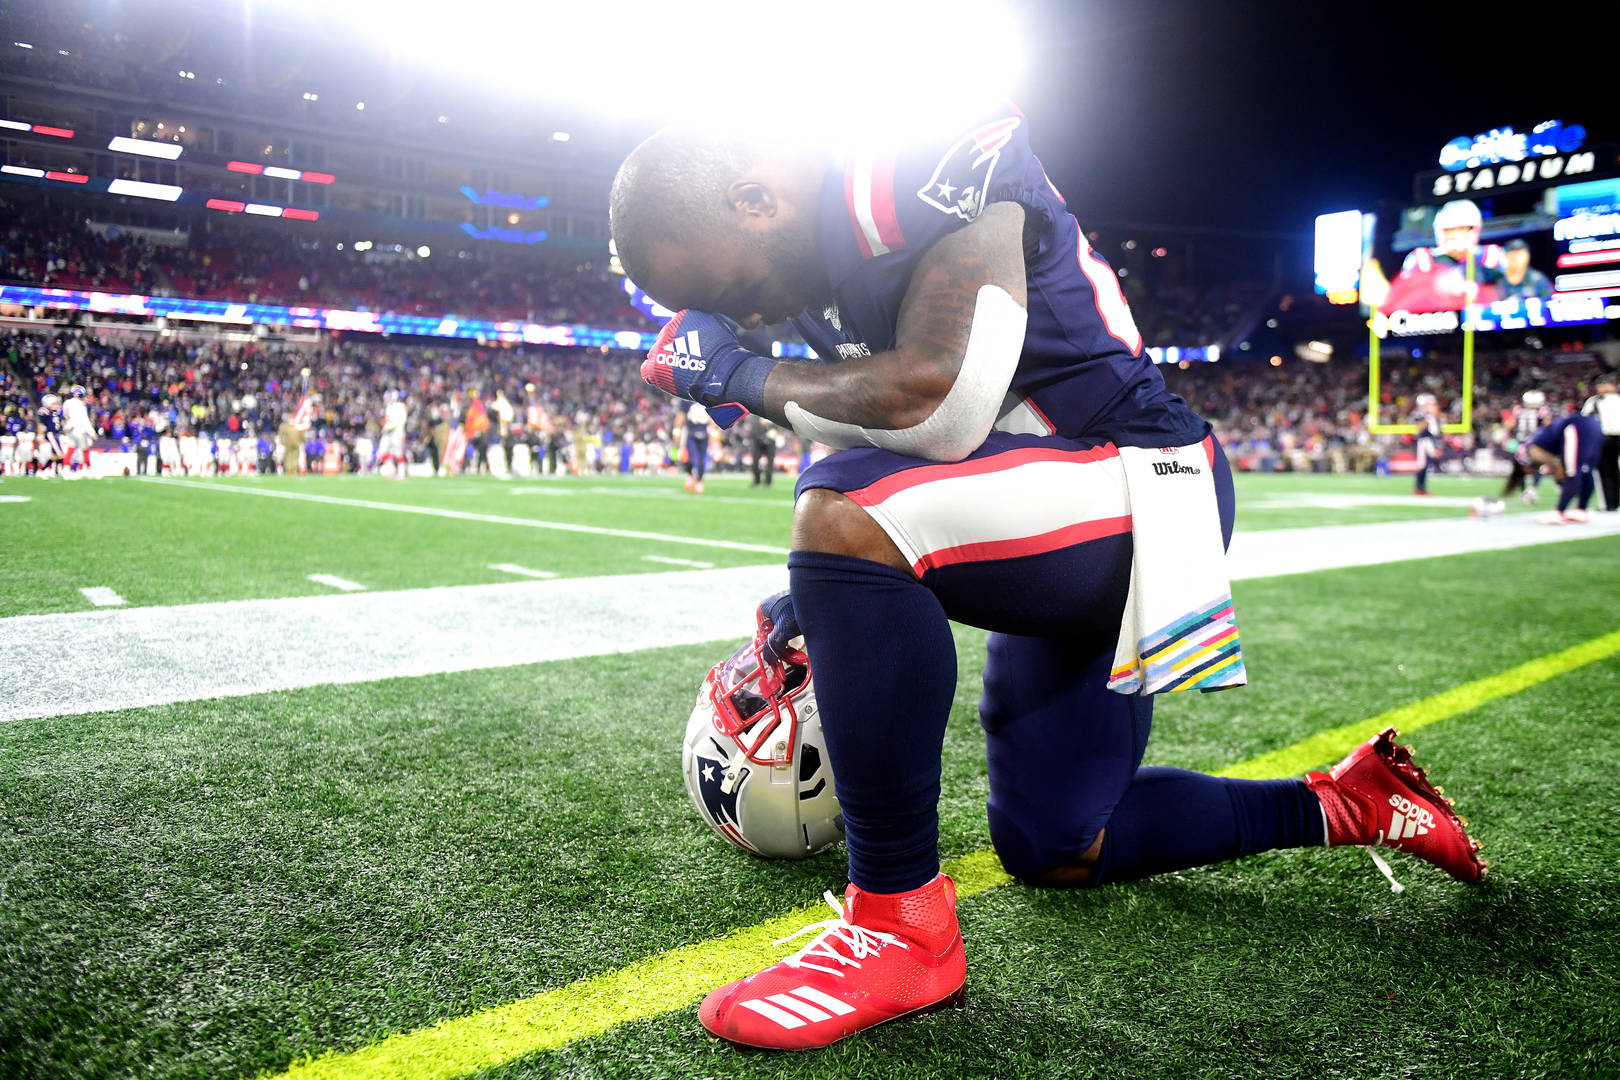 James White, Father, Patriots